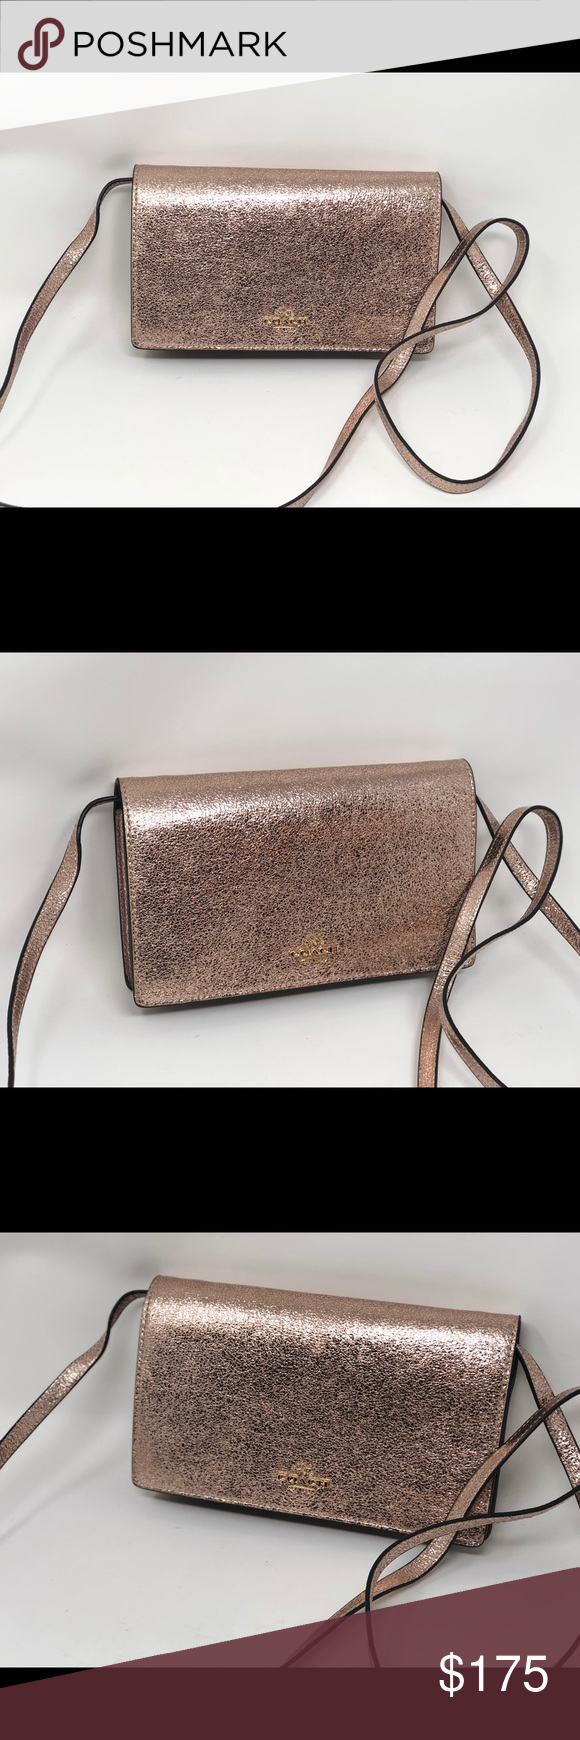 d638e48c246e New Coach F39066 Hayden Foldover Crossbody Clutch New Coach F39066 Hayden  Foldover Crossbody Clutch In Crinkle Metallic Leather Color Rose Gold  Crinkle ...